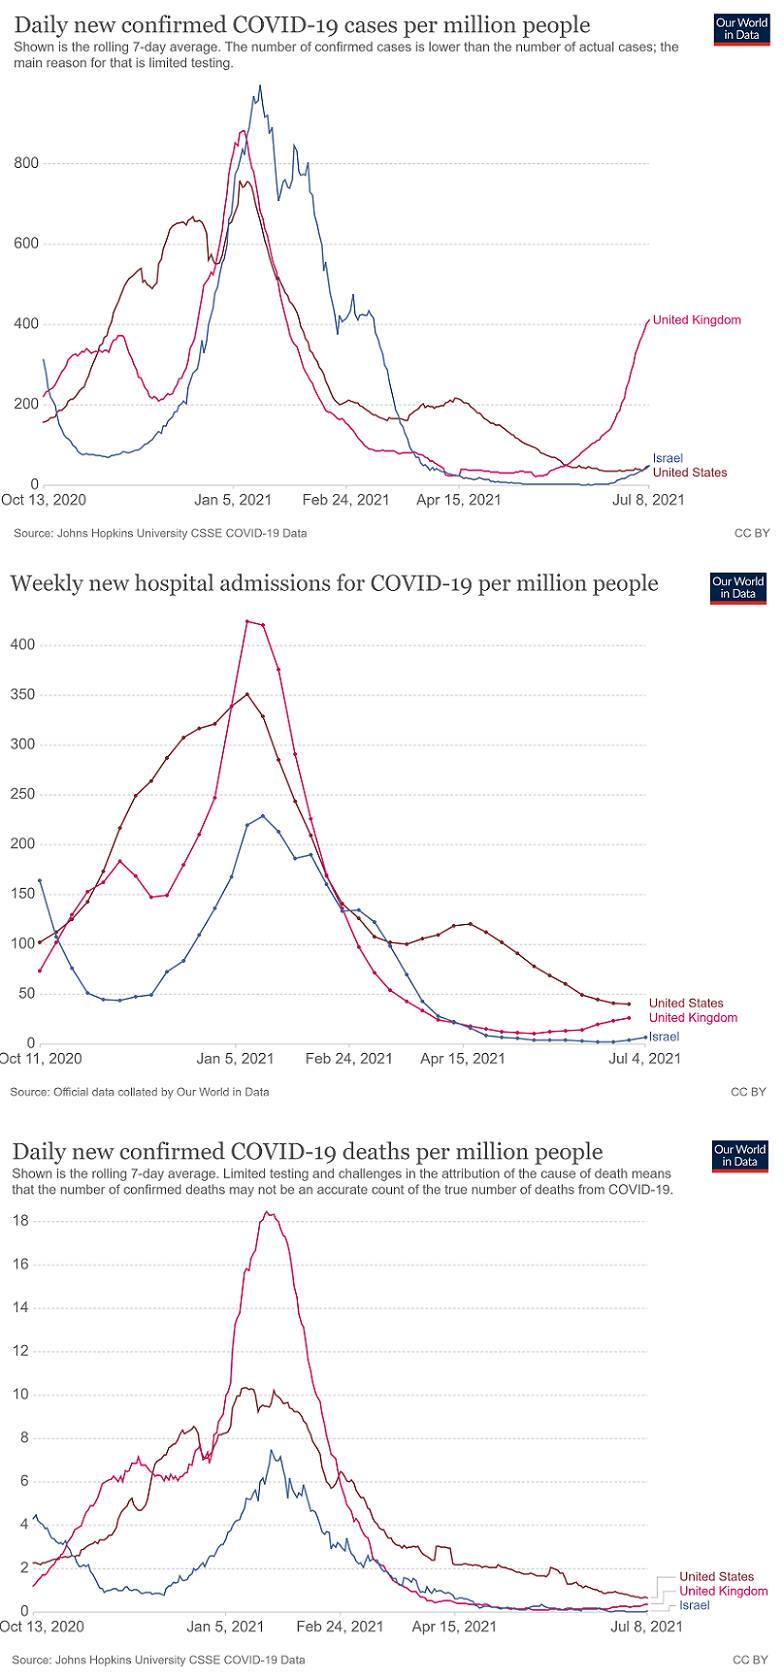 Graph 1: Daily new confirmed cases of covid-19 (per million population) in the UK, Israel and the US |  Graph 2: New hospital admissions for COVID patients (per million population) in the UK, Israel and the US |  Graph 3: Confirmed daily new deaths from COVID-19 (per million people) in the UK, Israel and the USA